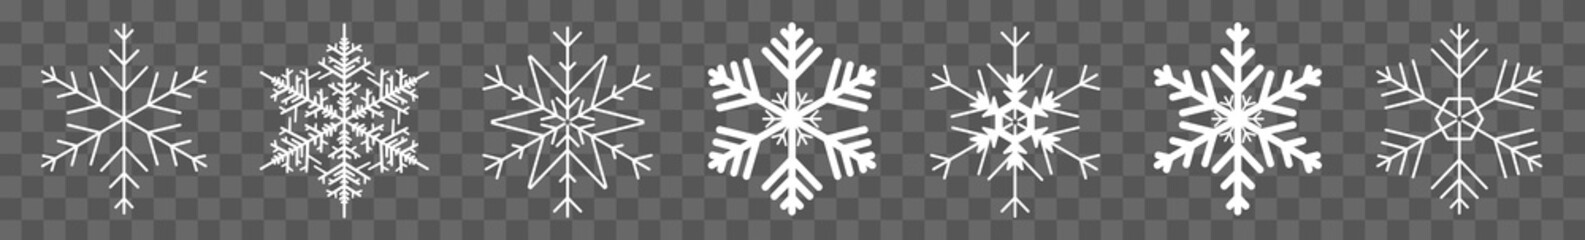 Snowflake Icon White | Snowflakes | Ice Crystal Winter Symbol | Christmas Logo | Xmas Sign | Isolated Transparent | Variations